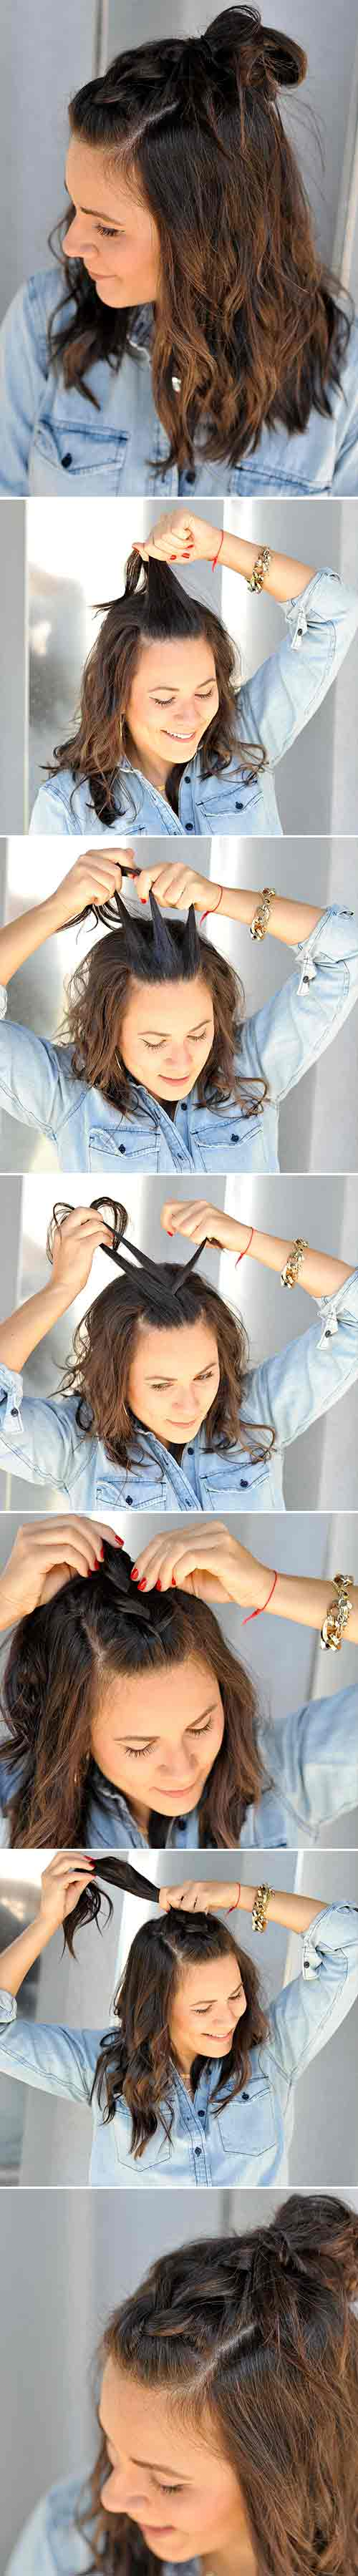 French Braid WIth A Top Knot